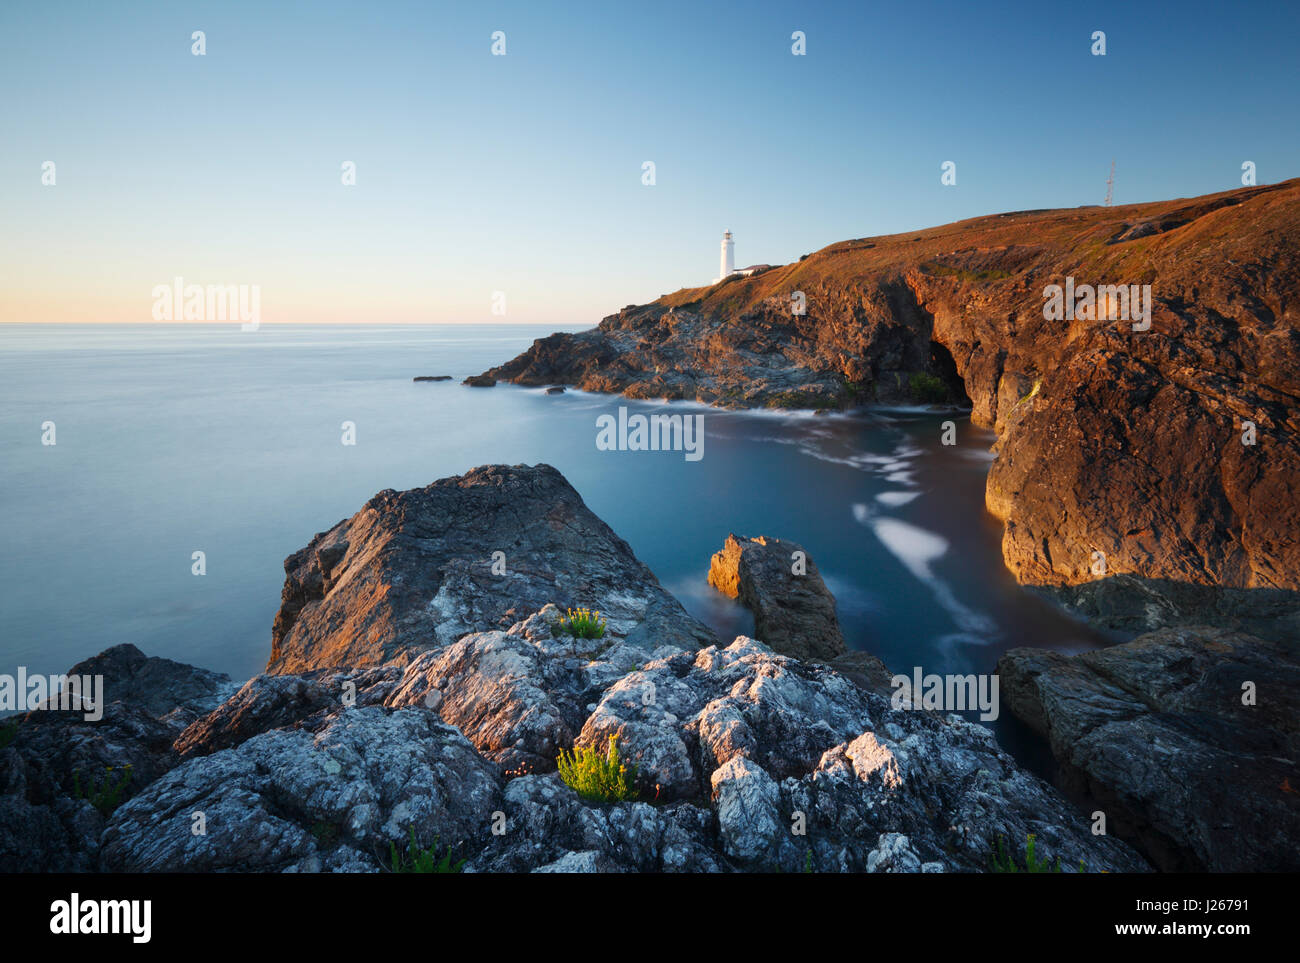 Trevose Head. Cornwall. UK. - Stock Image